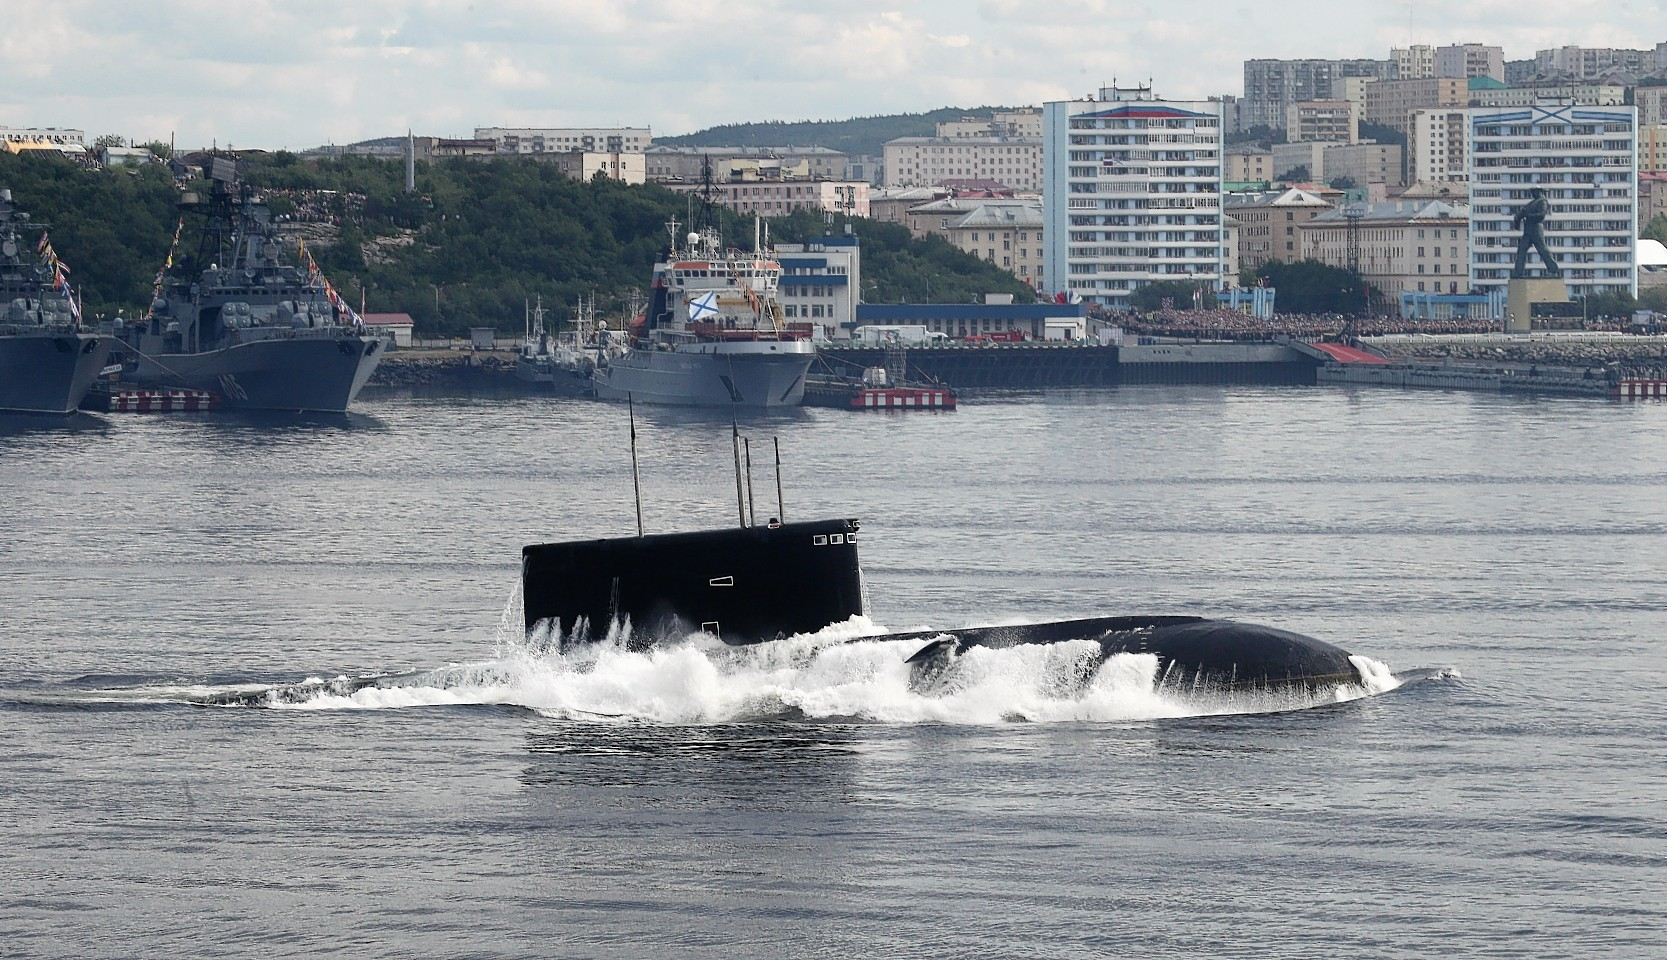 It is feared Russian submarines may pose a threat to Scottish fishermen